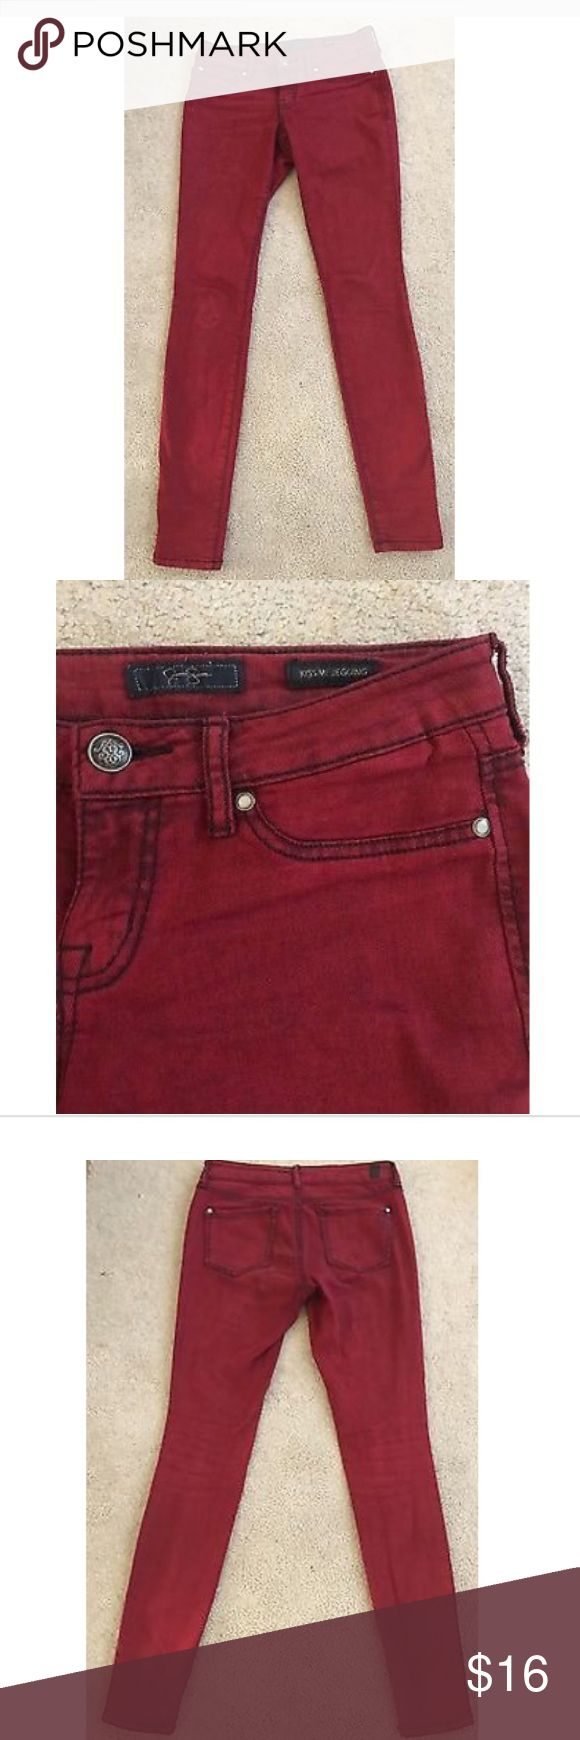 Jessica Simpson Kiss Me Super Skinny Jeans, Red Jessica Simpson Womens Kiss Me Super Skinny Jeans, Red. Size 26. In very good condition. Worn maybe twice. Jessica Simpson Jeans Skinny